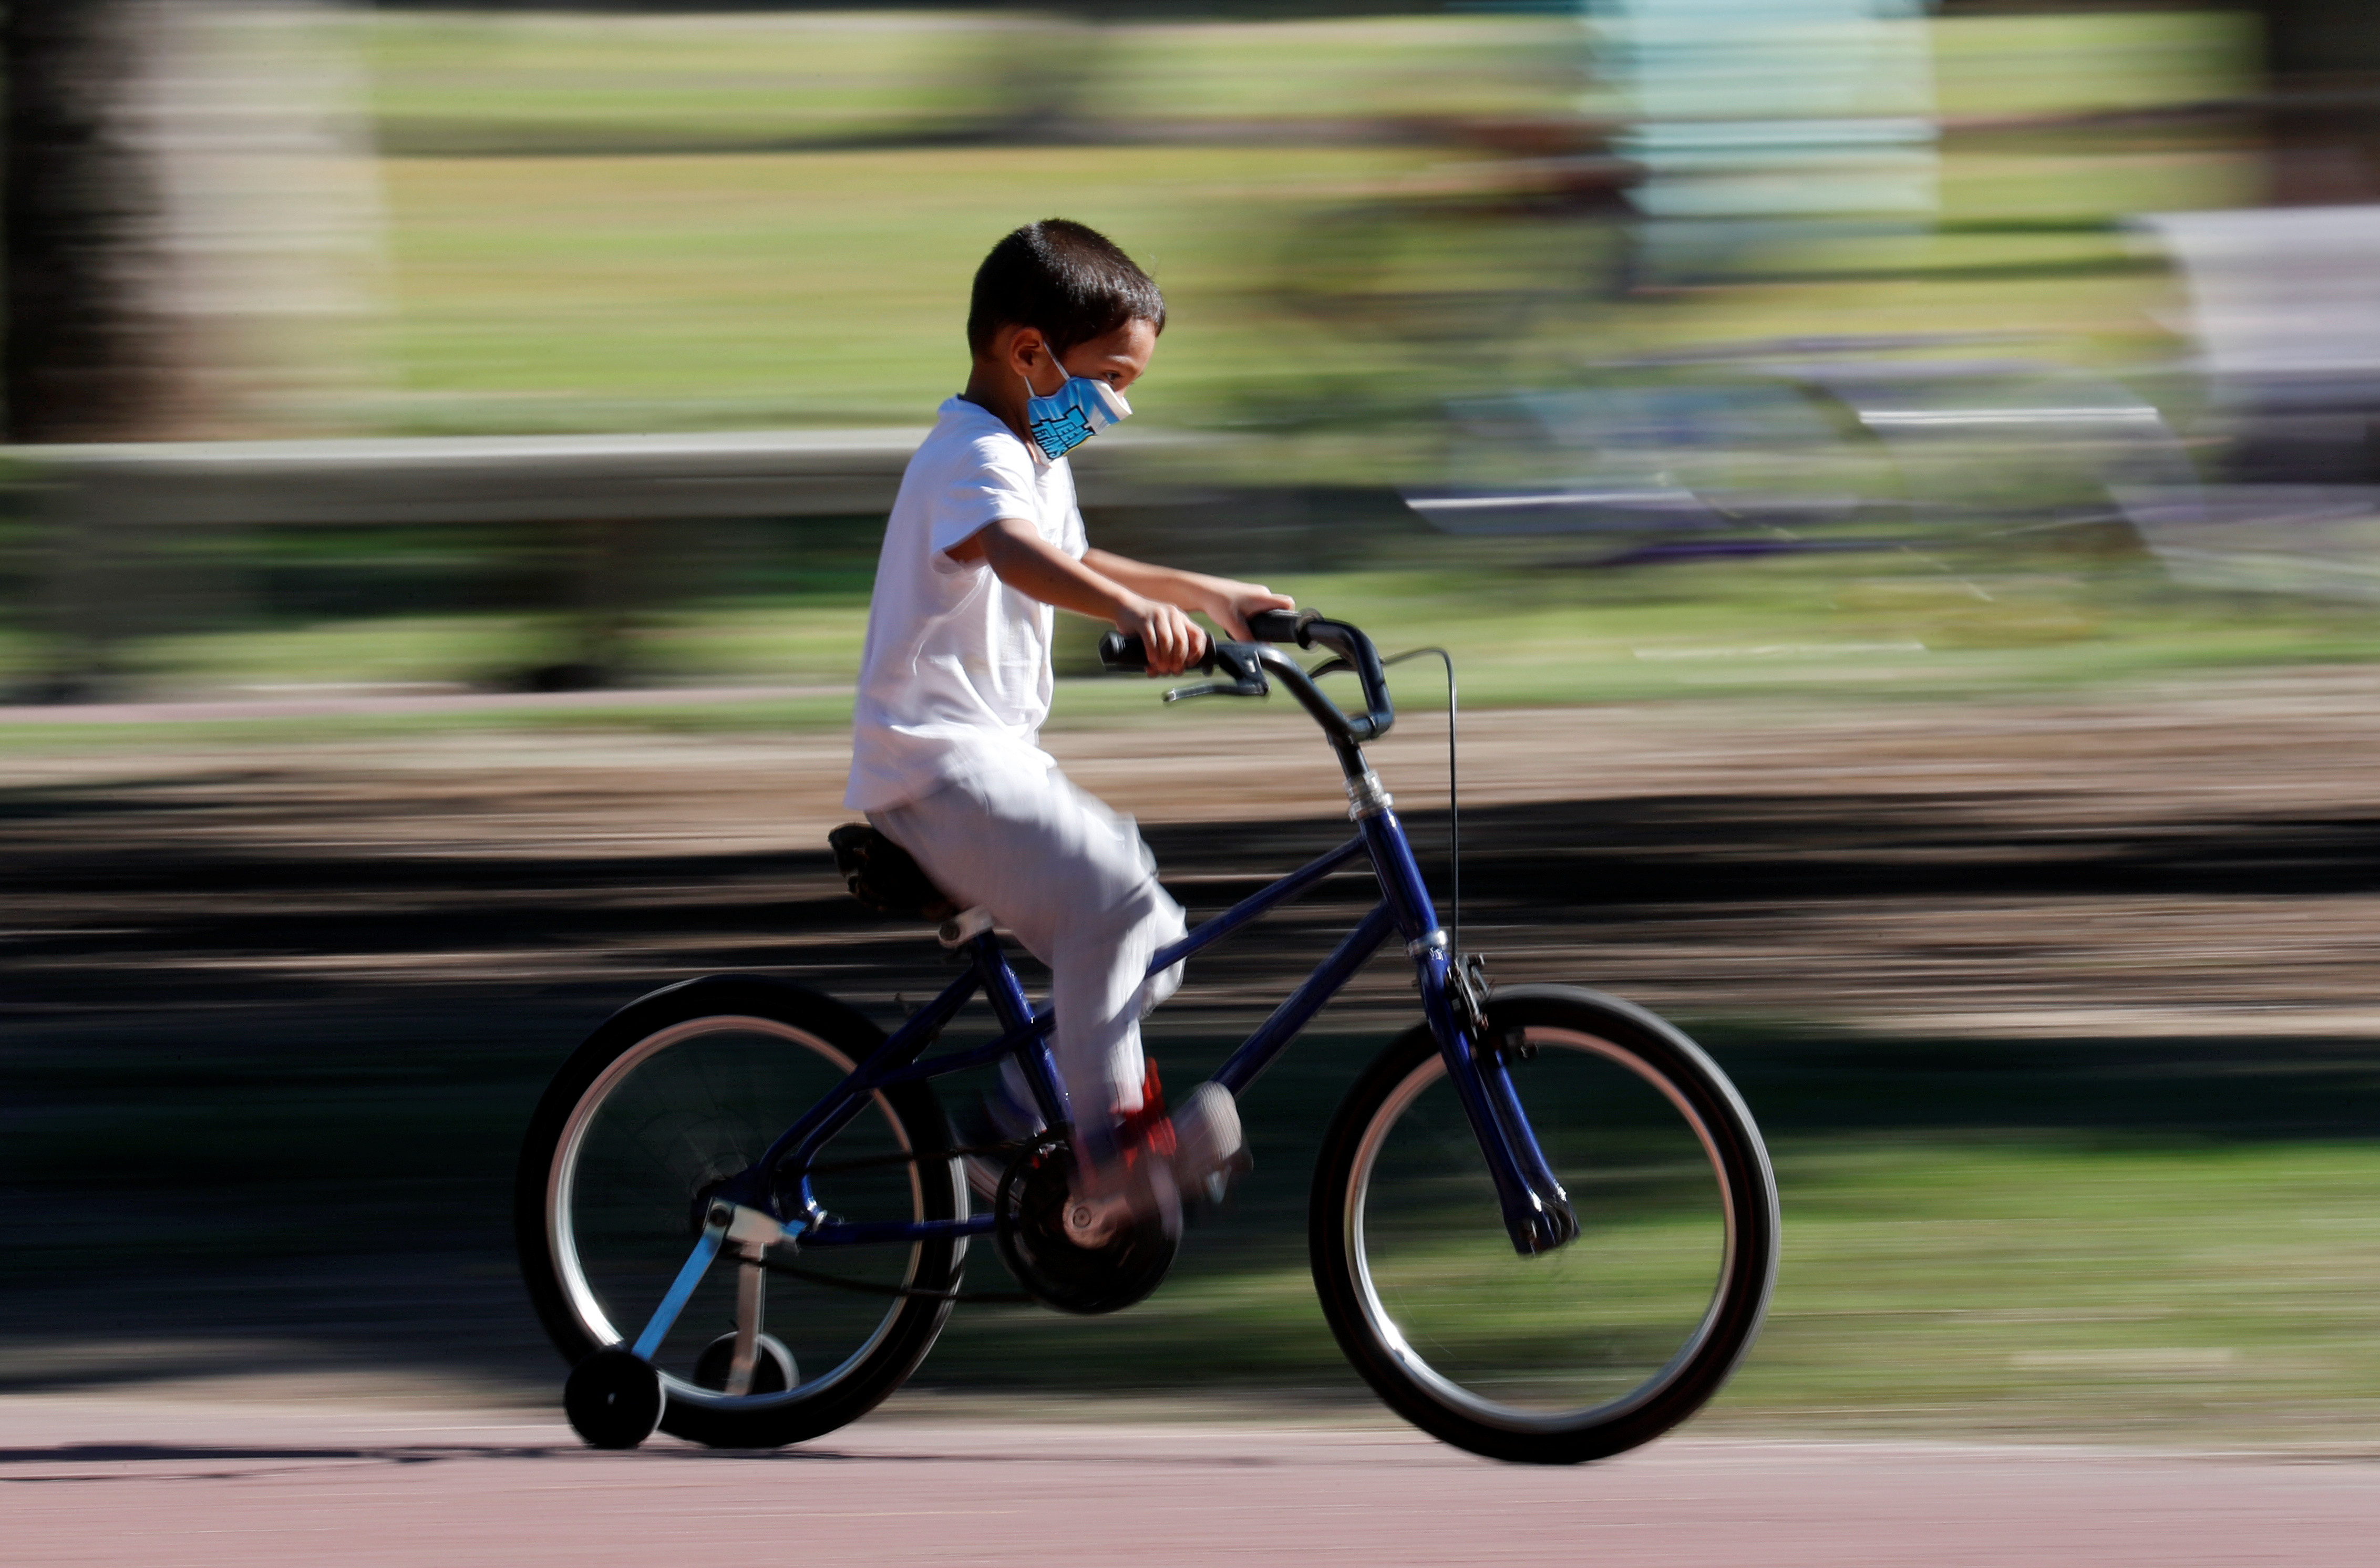 A boy wearing a face mask rides a bike in a park after restrictions were partially lifted for children in the city of Buenos Aires during the coronavirus disease (COVID-19) outbreak, Argentina May 16, 2020.